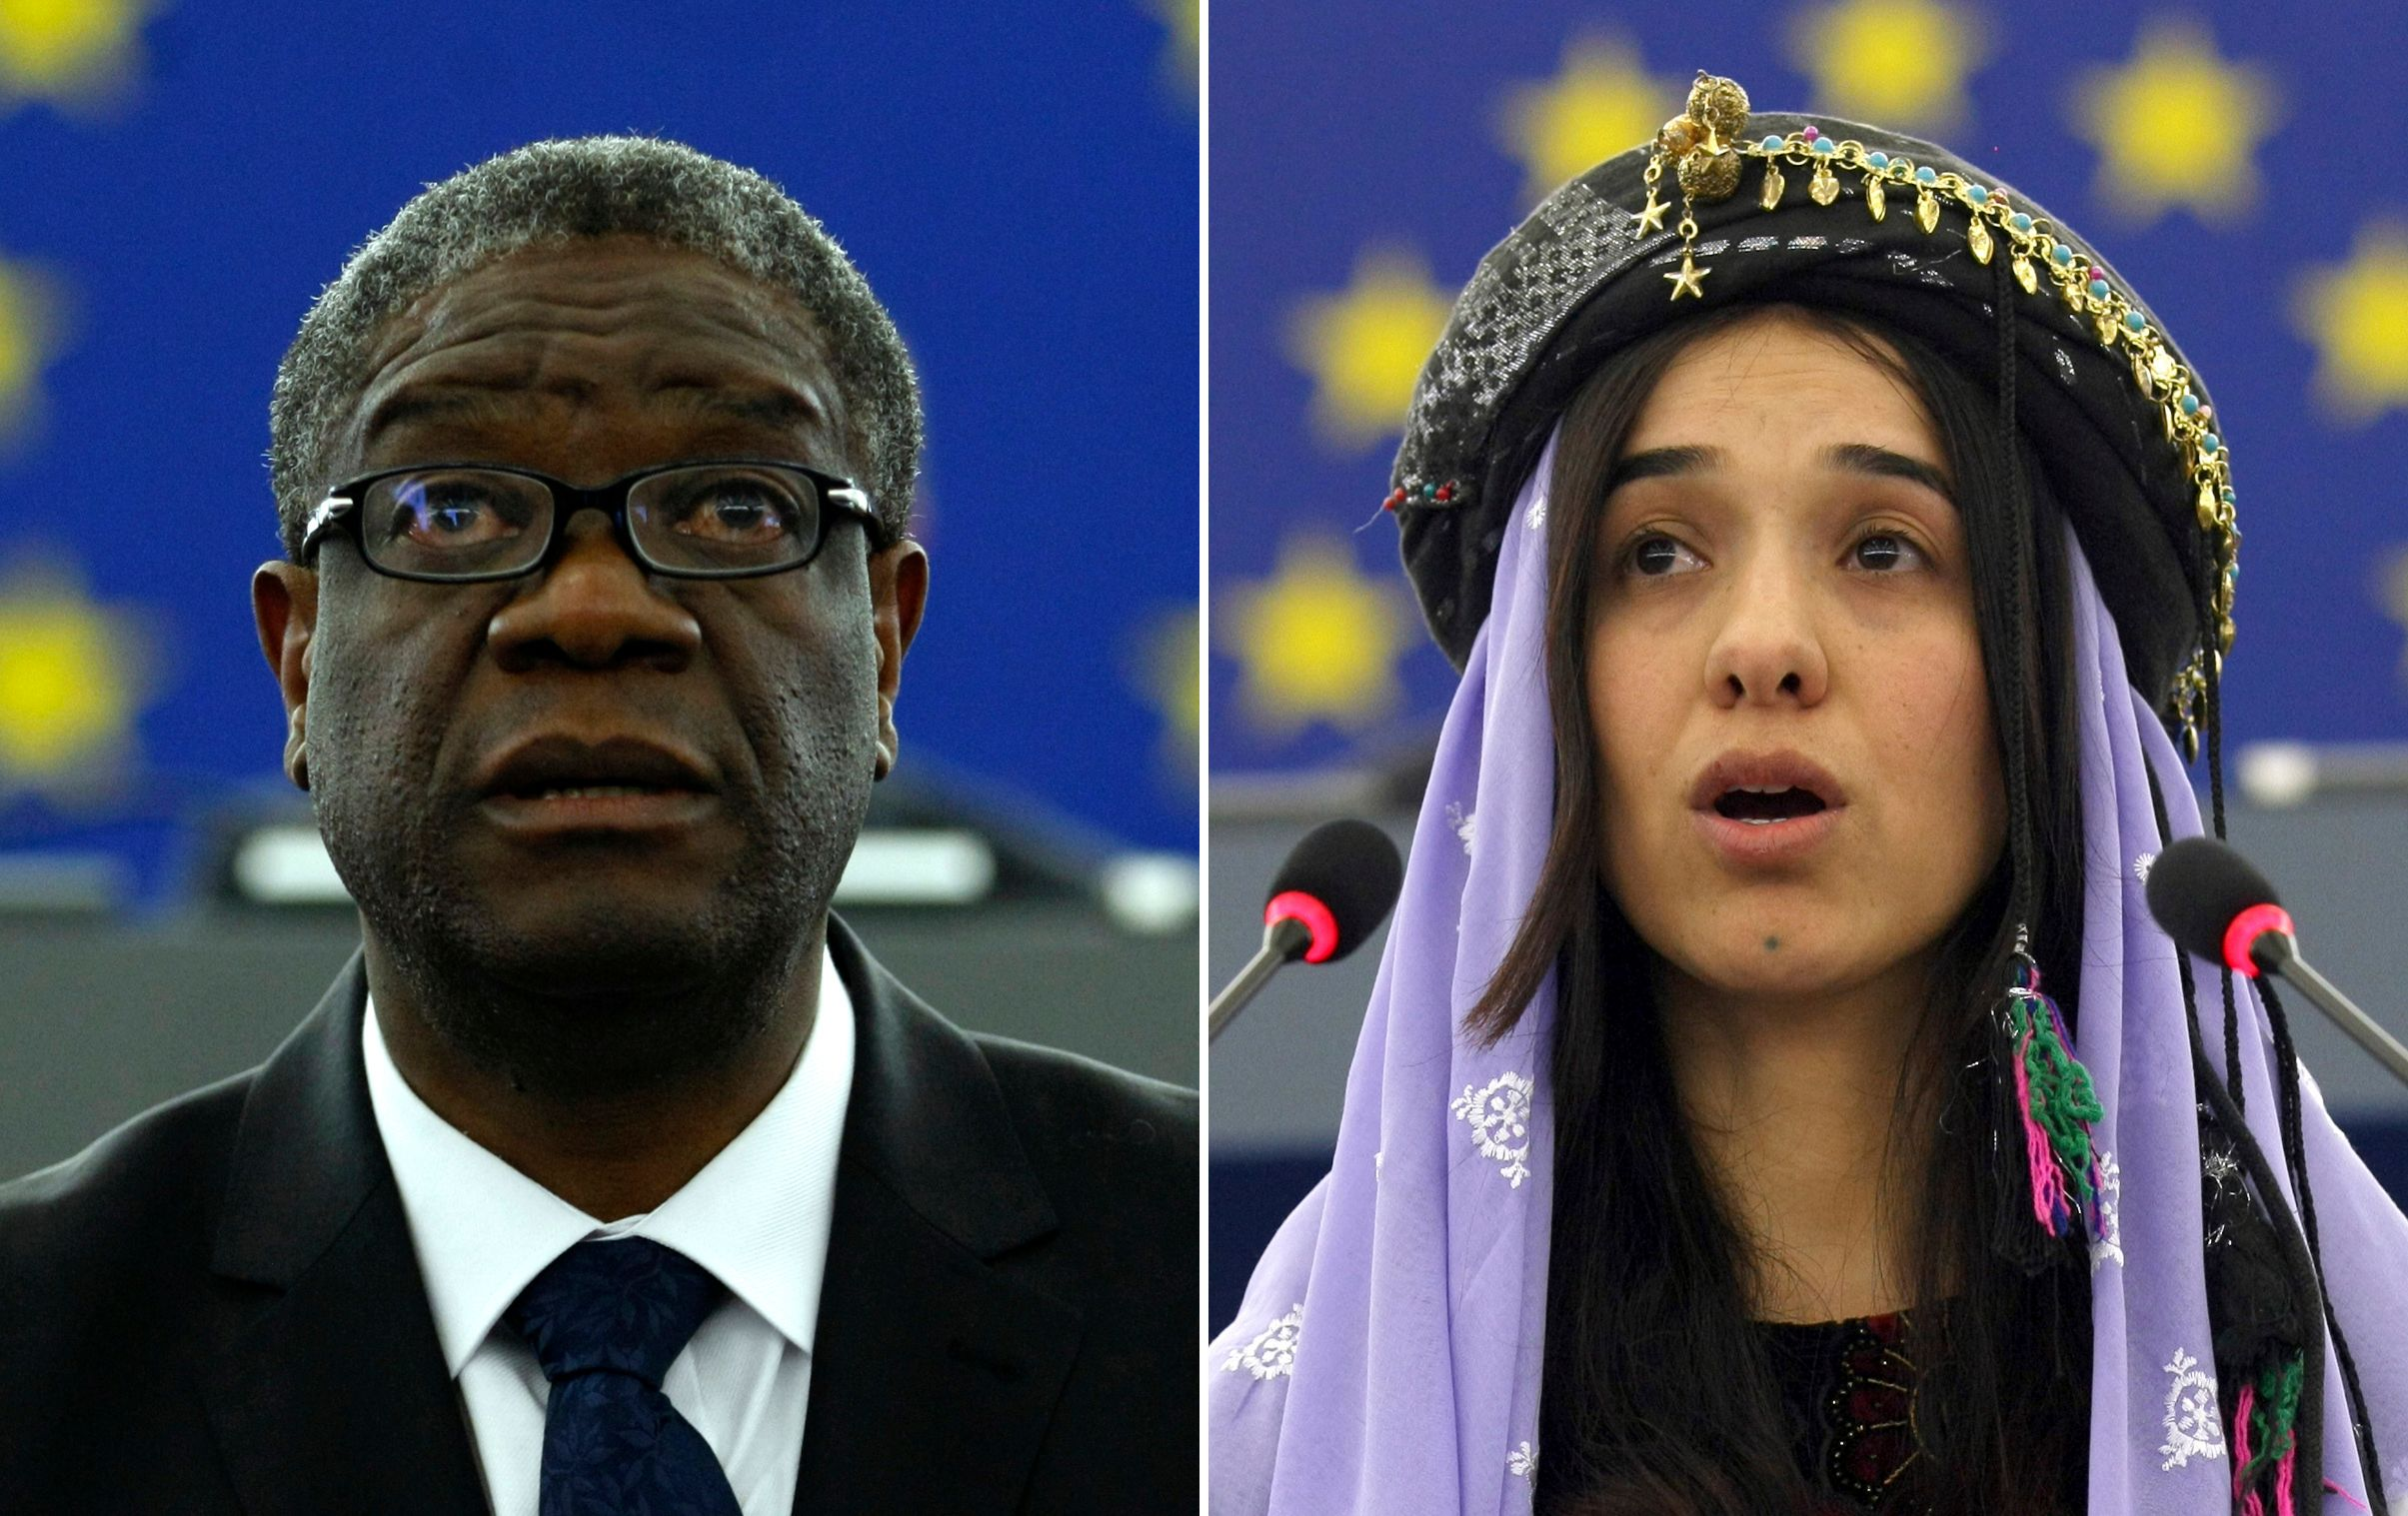 Anti-rape activists Denis Mukwege, Nadia Murad win 2018 Nobel Peace Prize